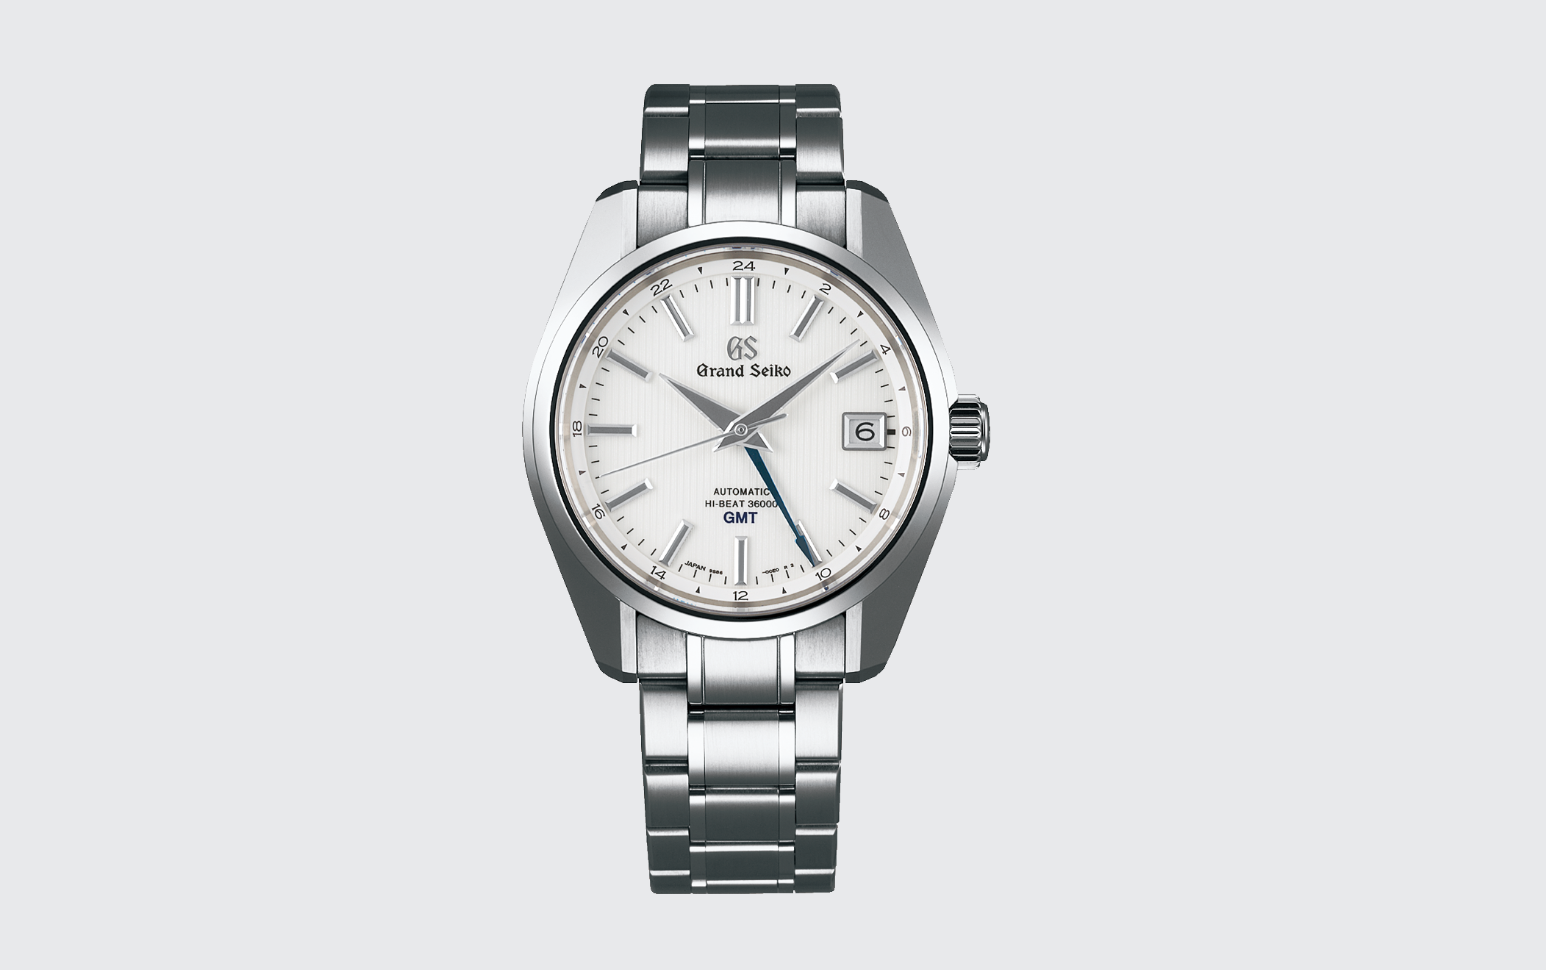 Grand Seiko Corp. of America will capitalize on their popularity stateside